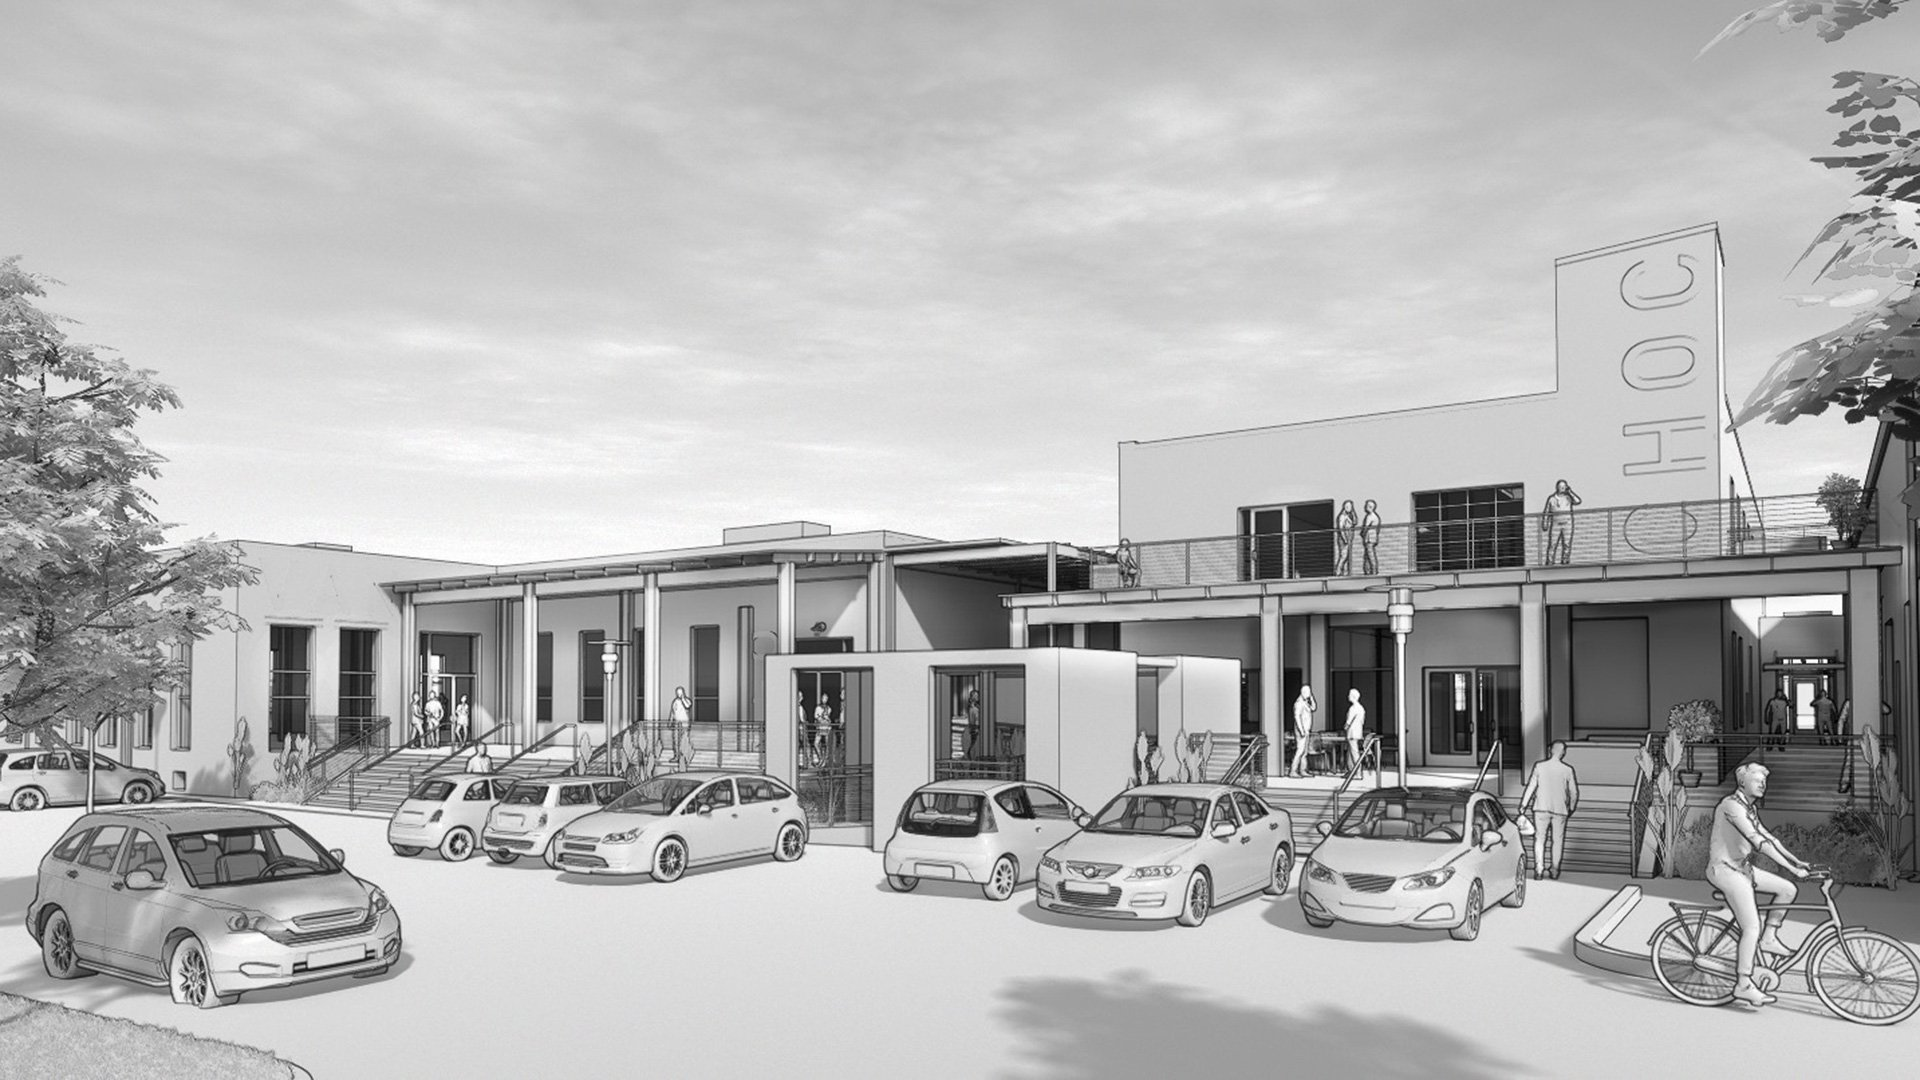 Adaptive Reuse Project rendering for Historic, Borden Ice Cream Plant